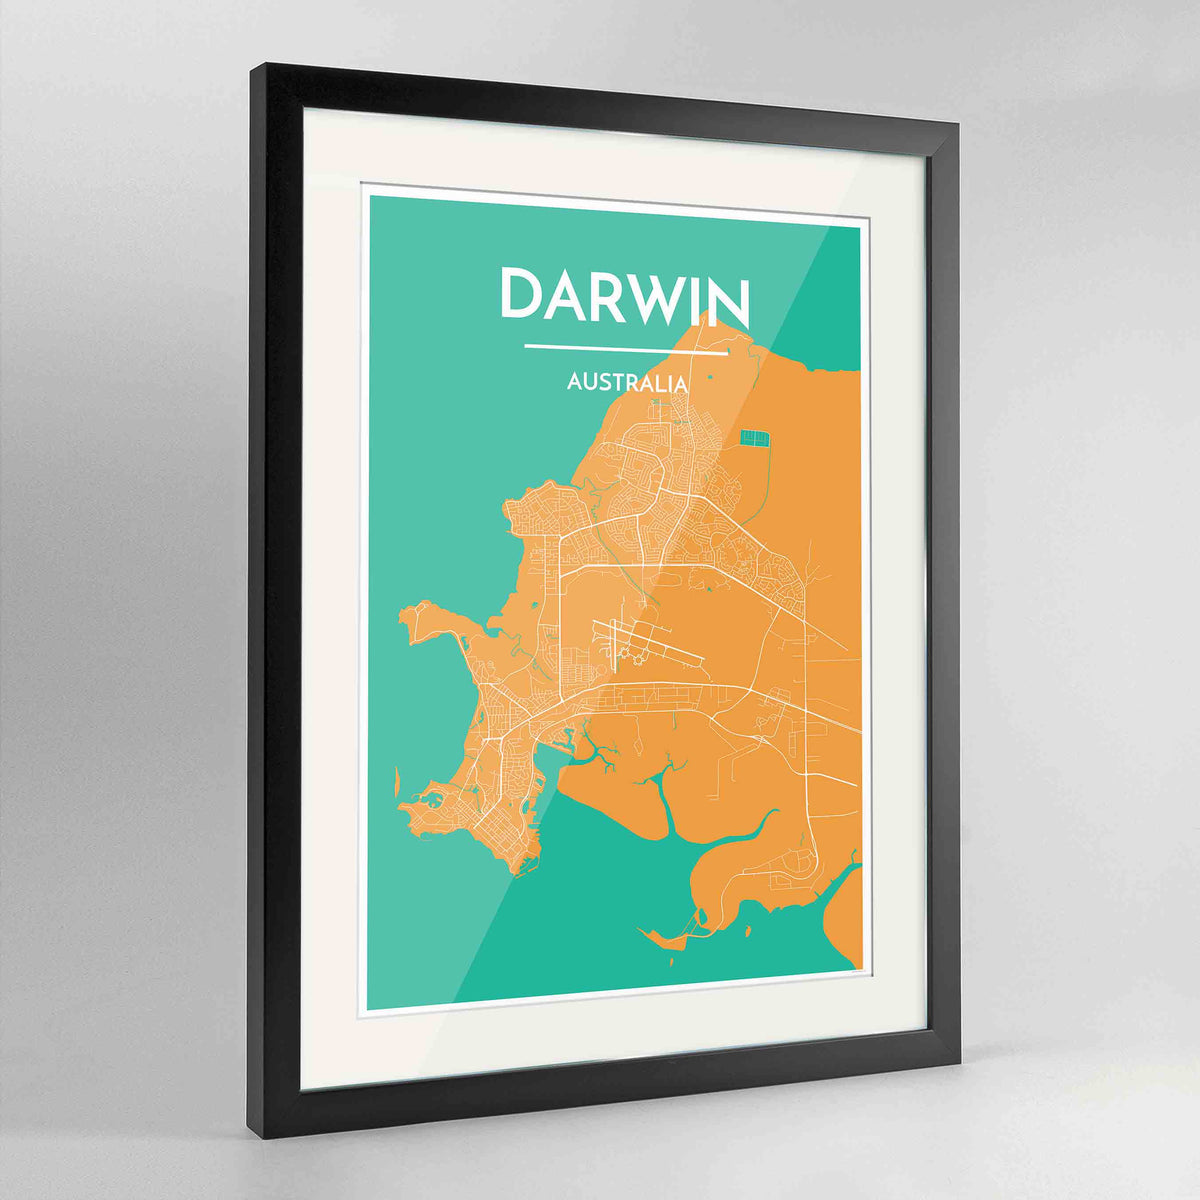 "Framed Darwin Map Art Print 24x36"" Contemporary Black frame Point Two Design Group"